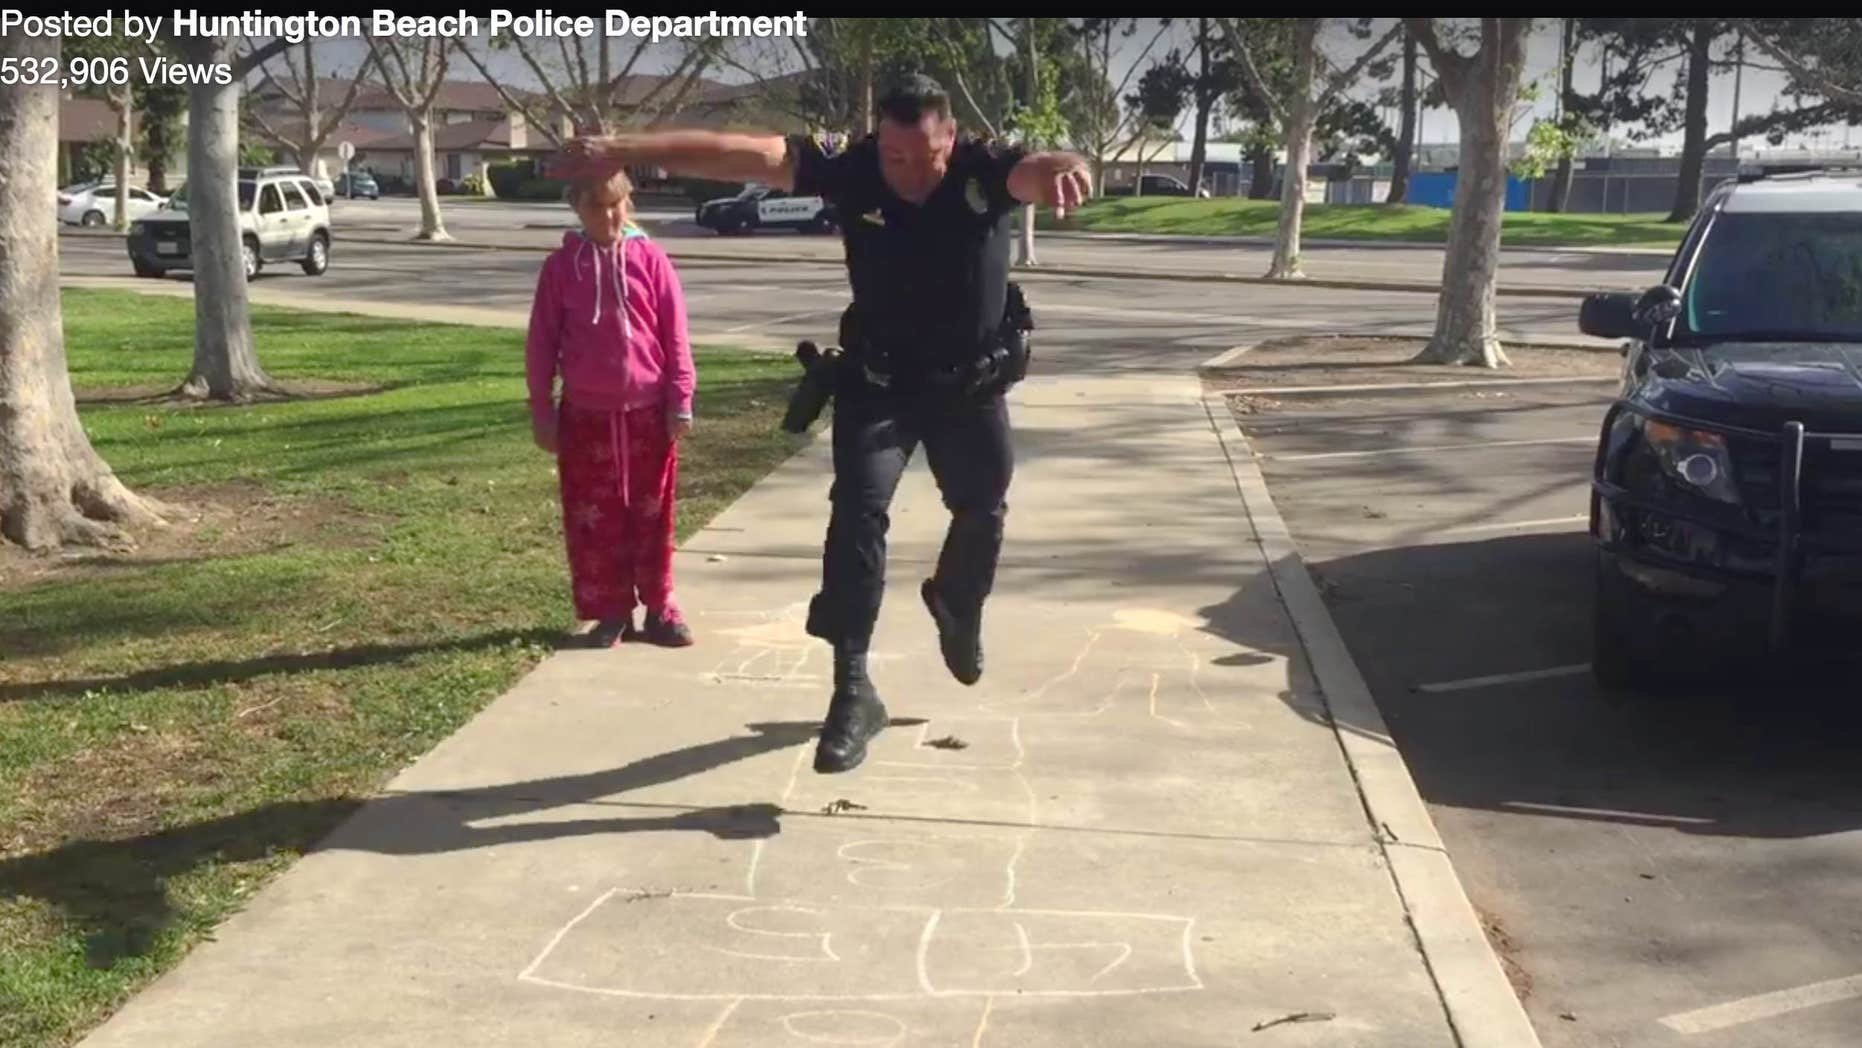 In this Wednesday, March 30, 2016 still frame from video provided by the Huntington Beach, Calif., Police Department, Officer Zach Pricer shows an 11-year-old homeless girl how to hopscotch on a street in Huntington Beach, Calif.